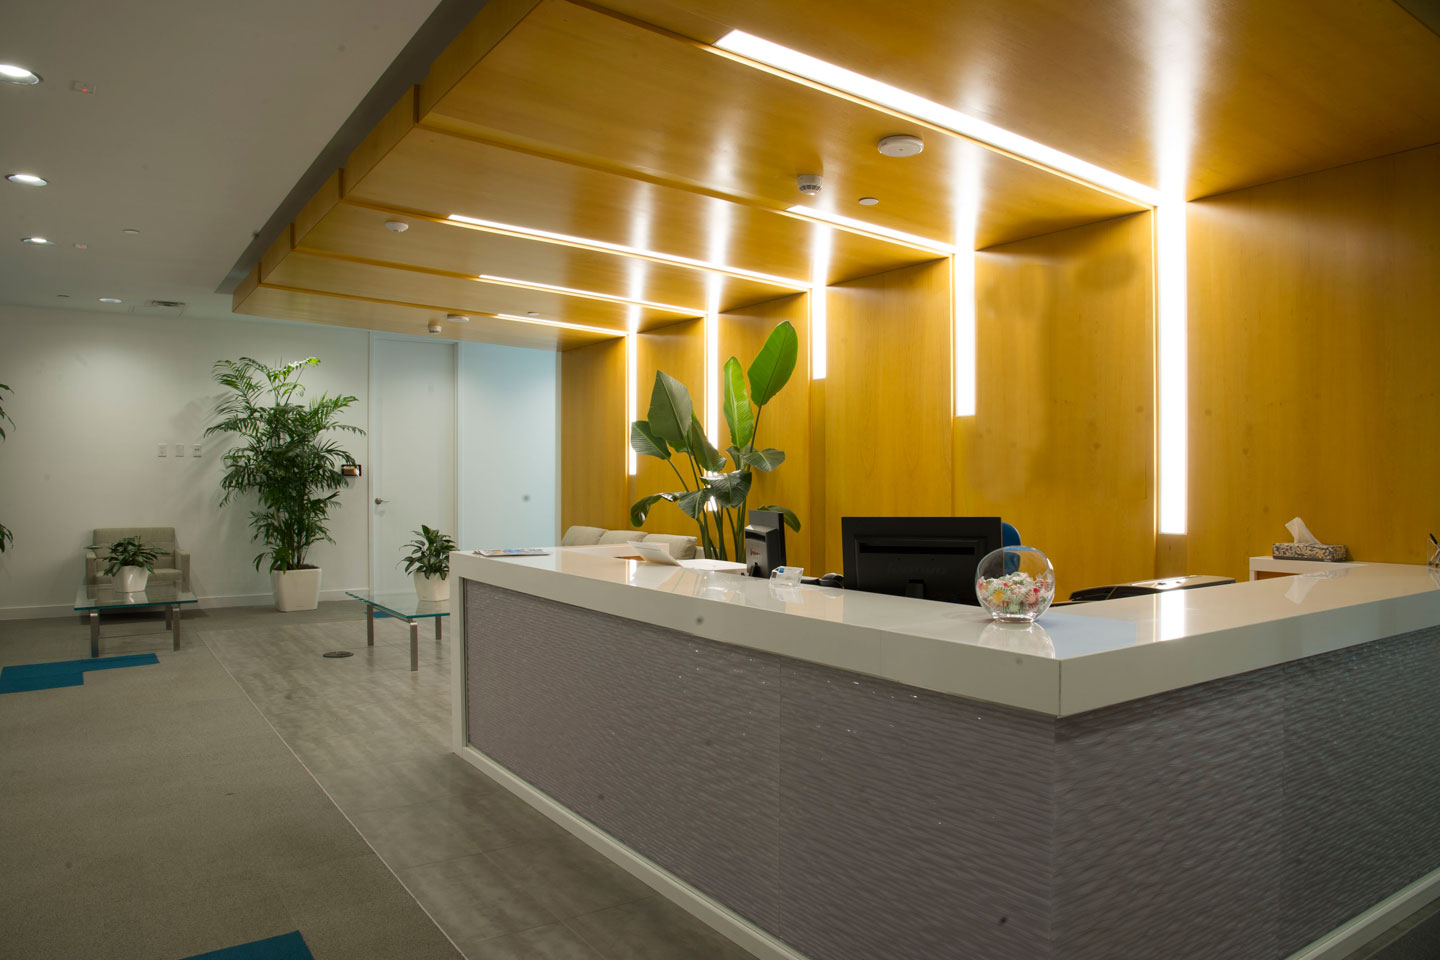 photo of the bupa office reception desk